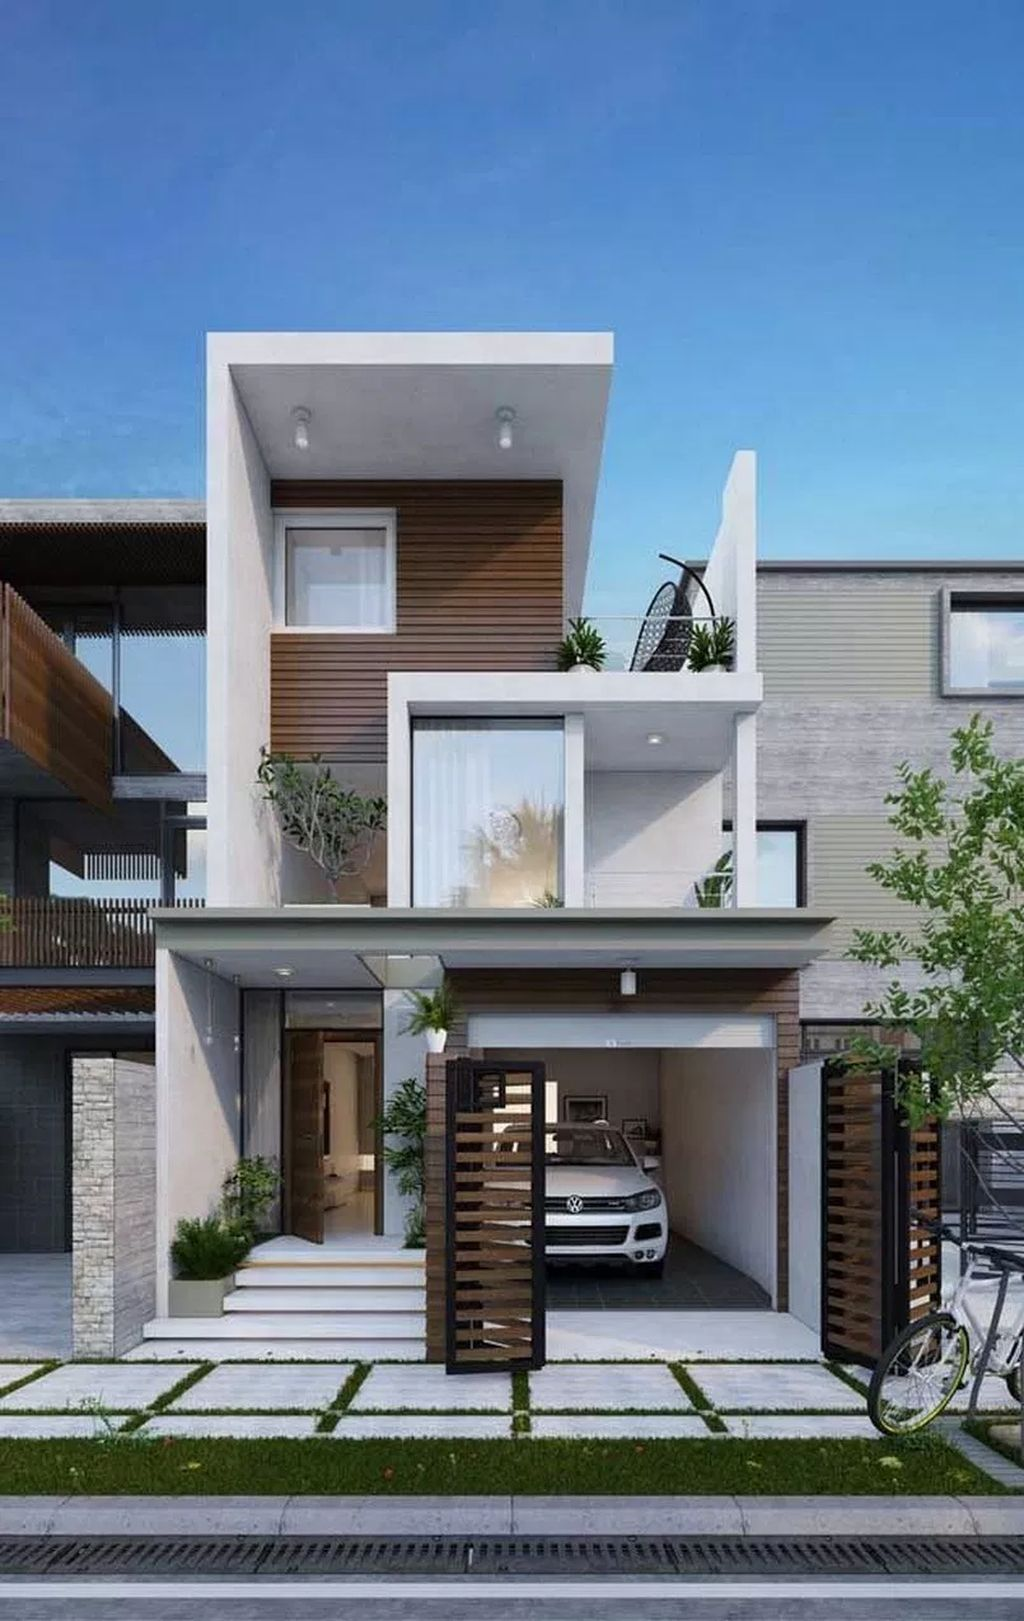 43 Modern House Exterior Design Ideas To Copy Rigth Now Small House Exteriors Contemporary House Exterior Modern Minimalist House